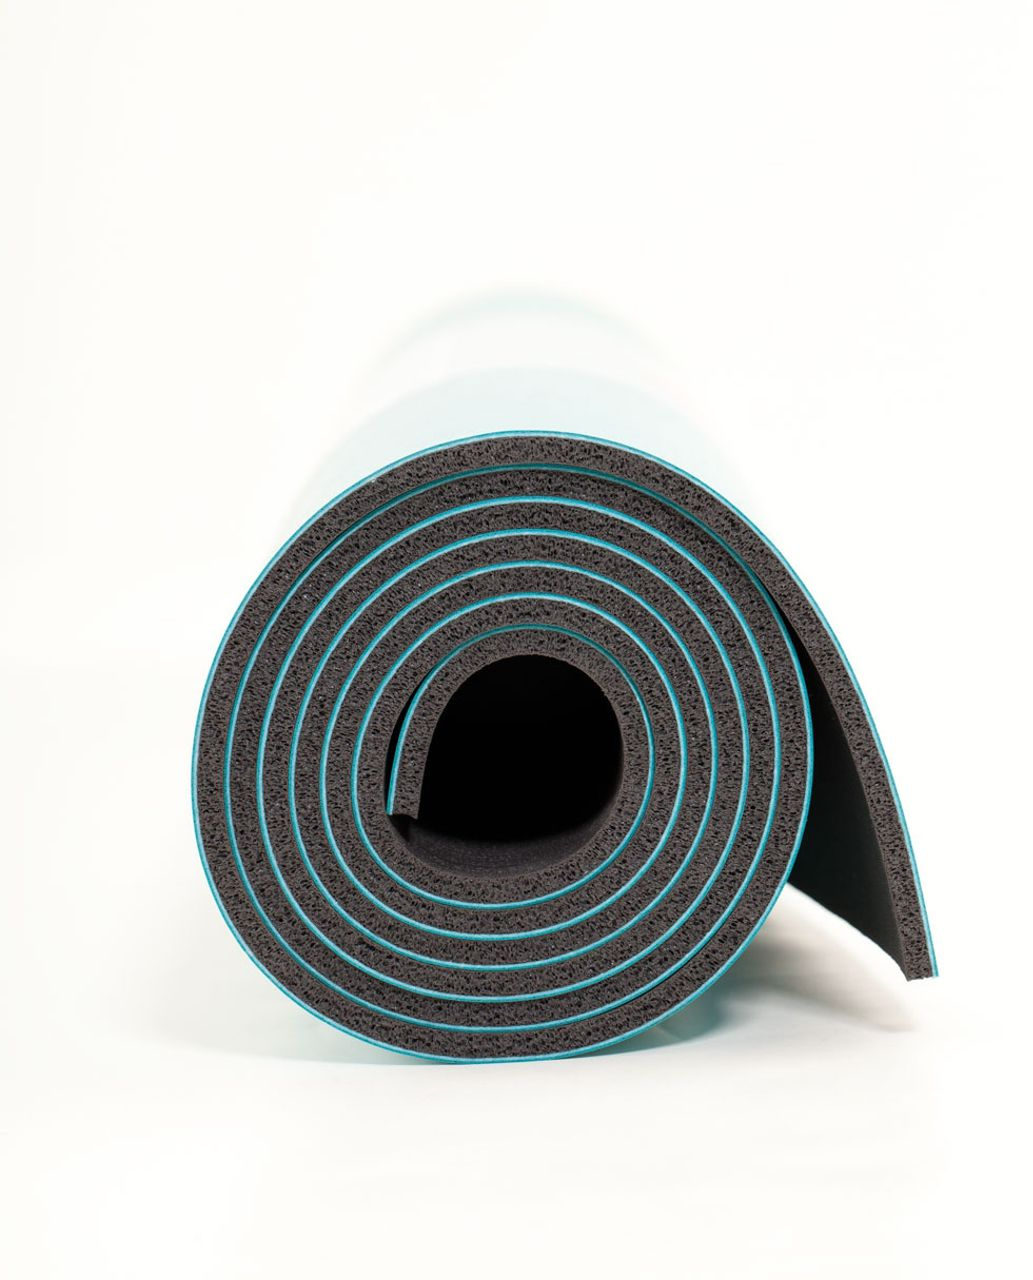 Lululemon The Mat - Peacock Blue / Black